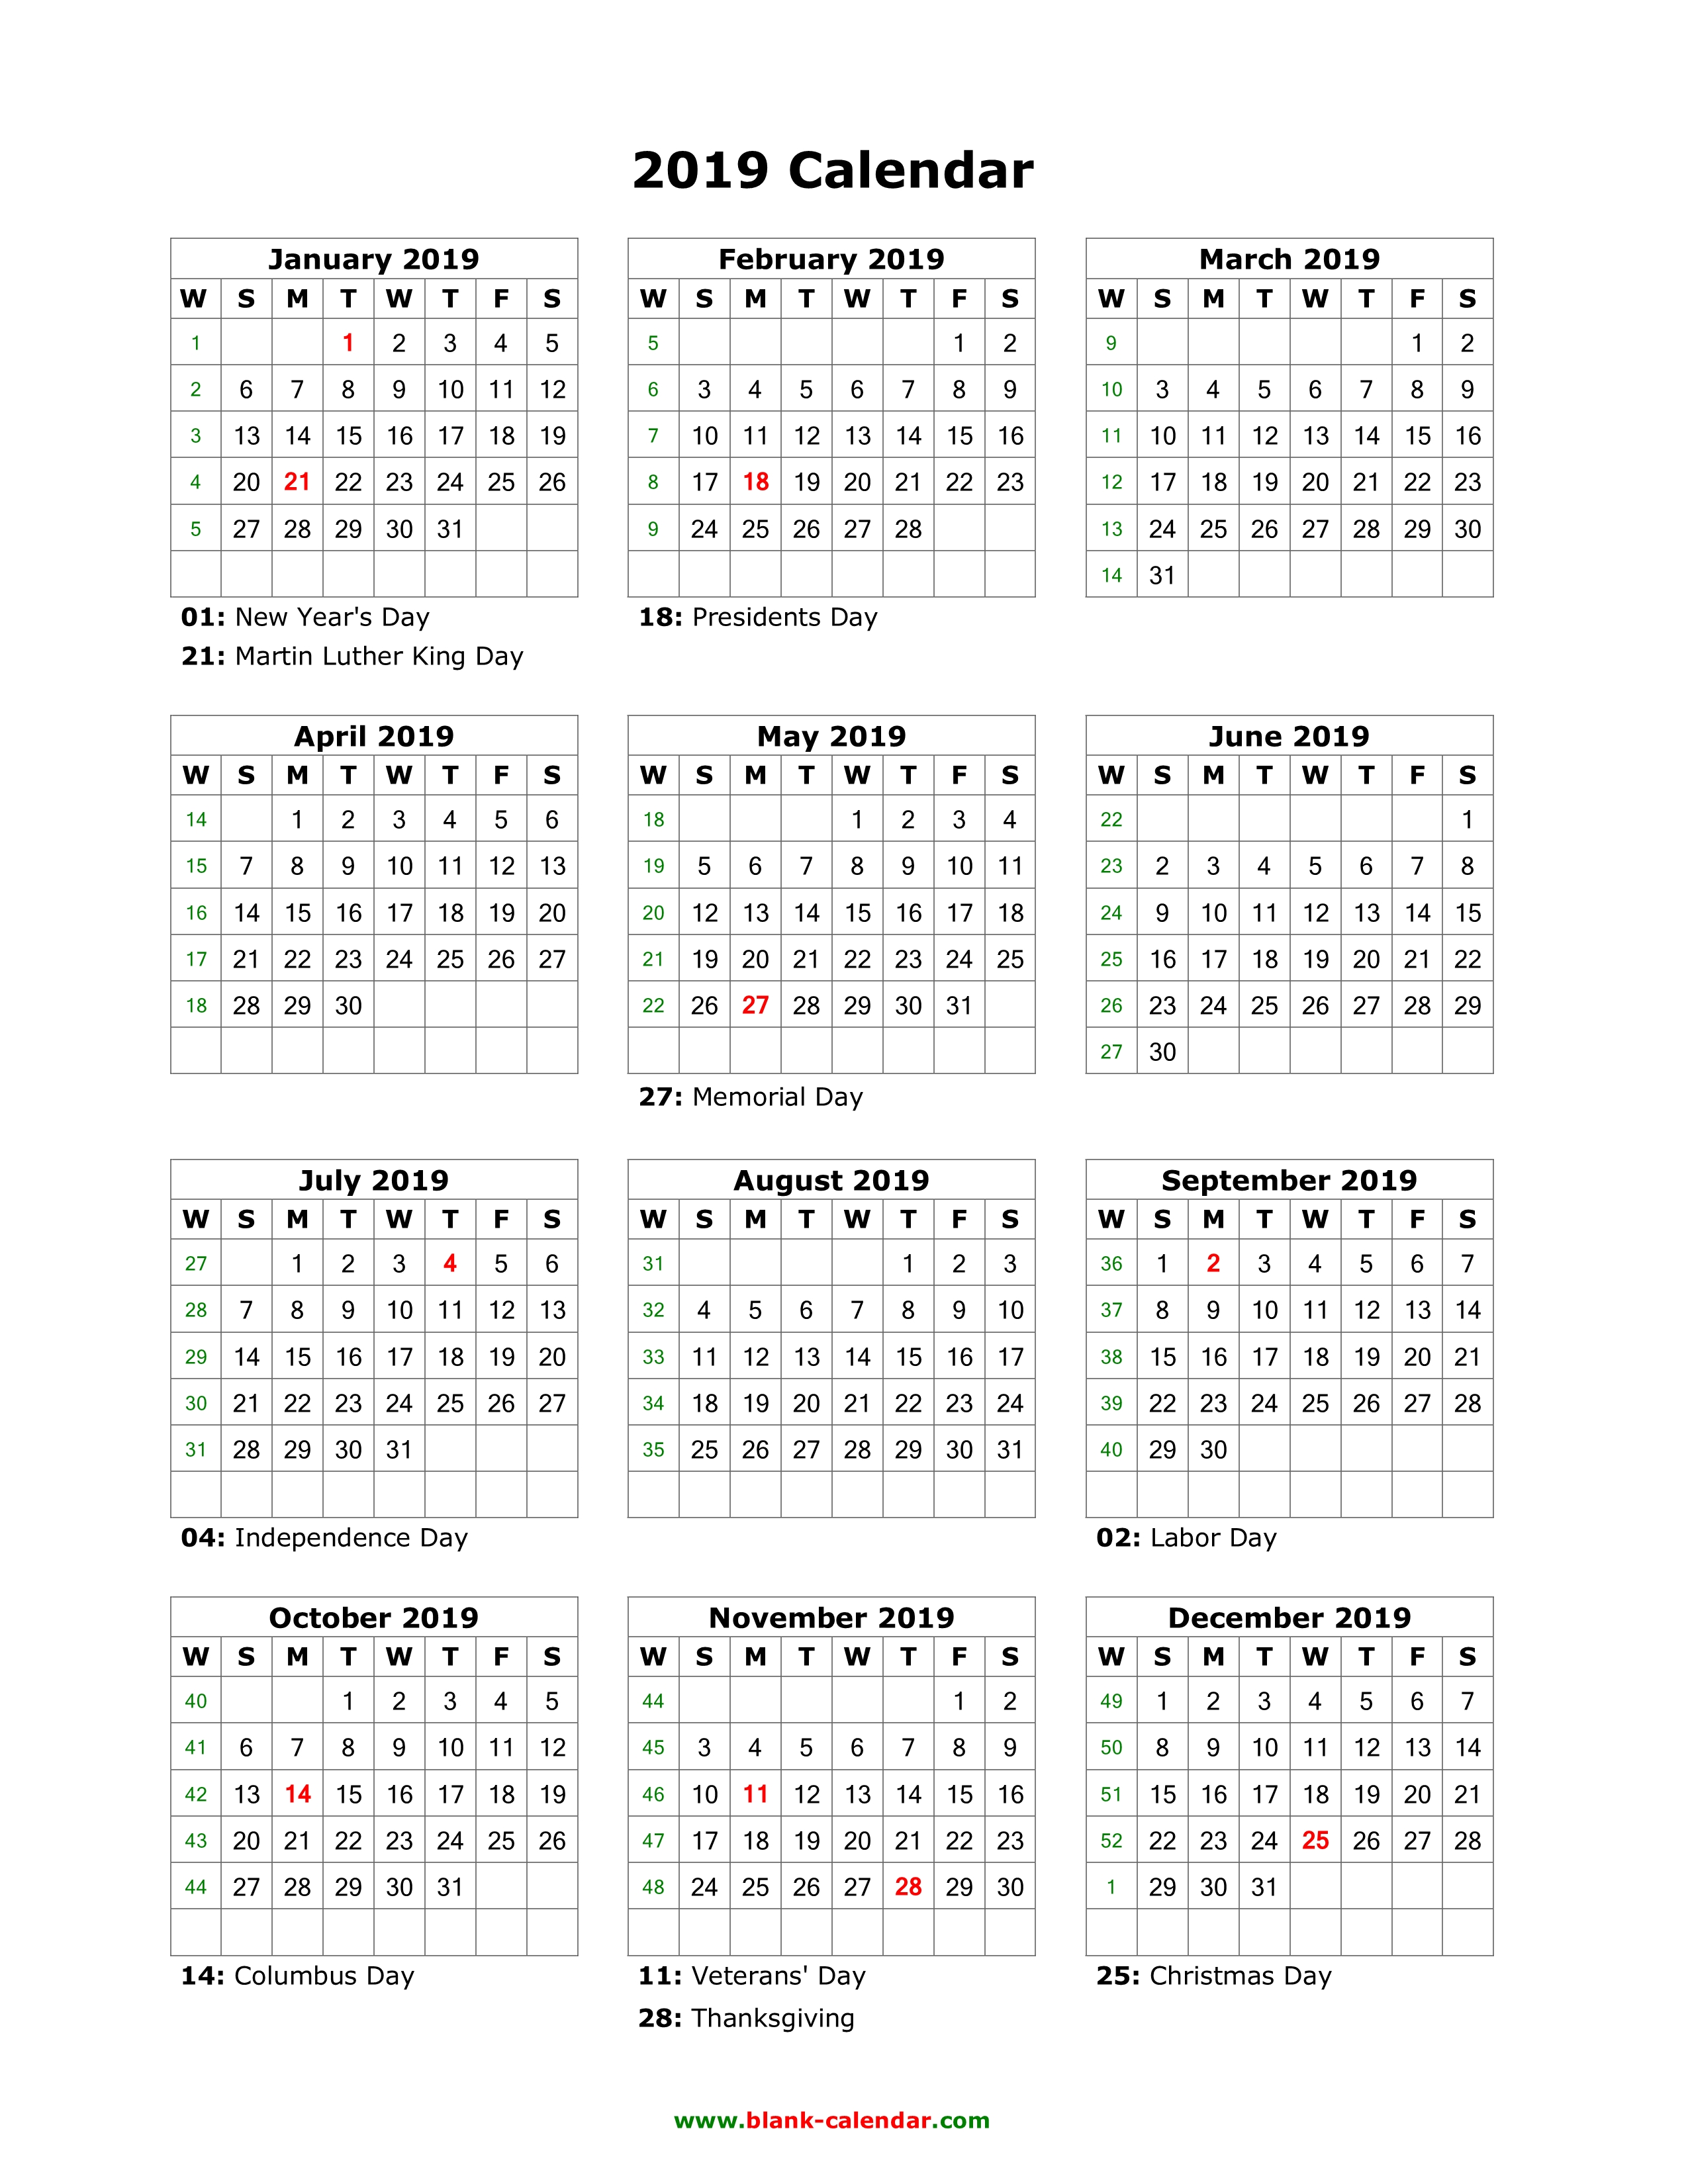 Year 2019 Calendar With Holidays Download Blank US 12 Months On One Page